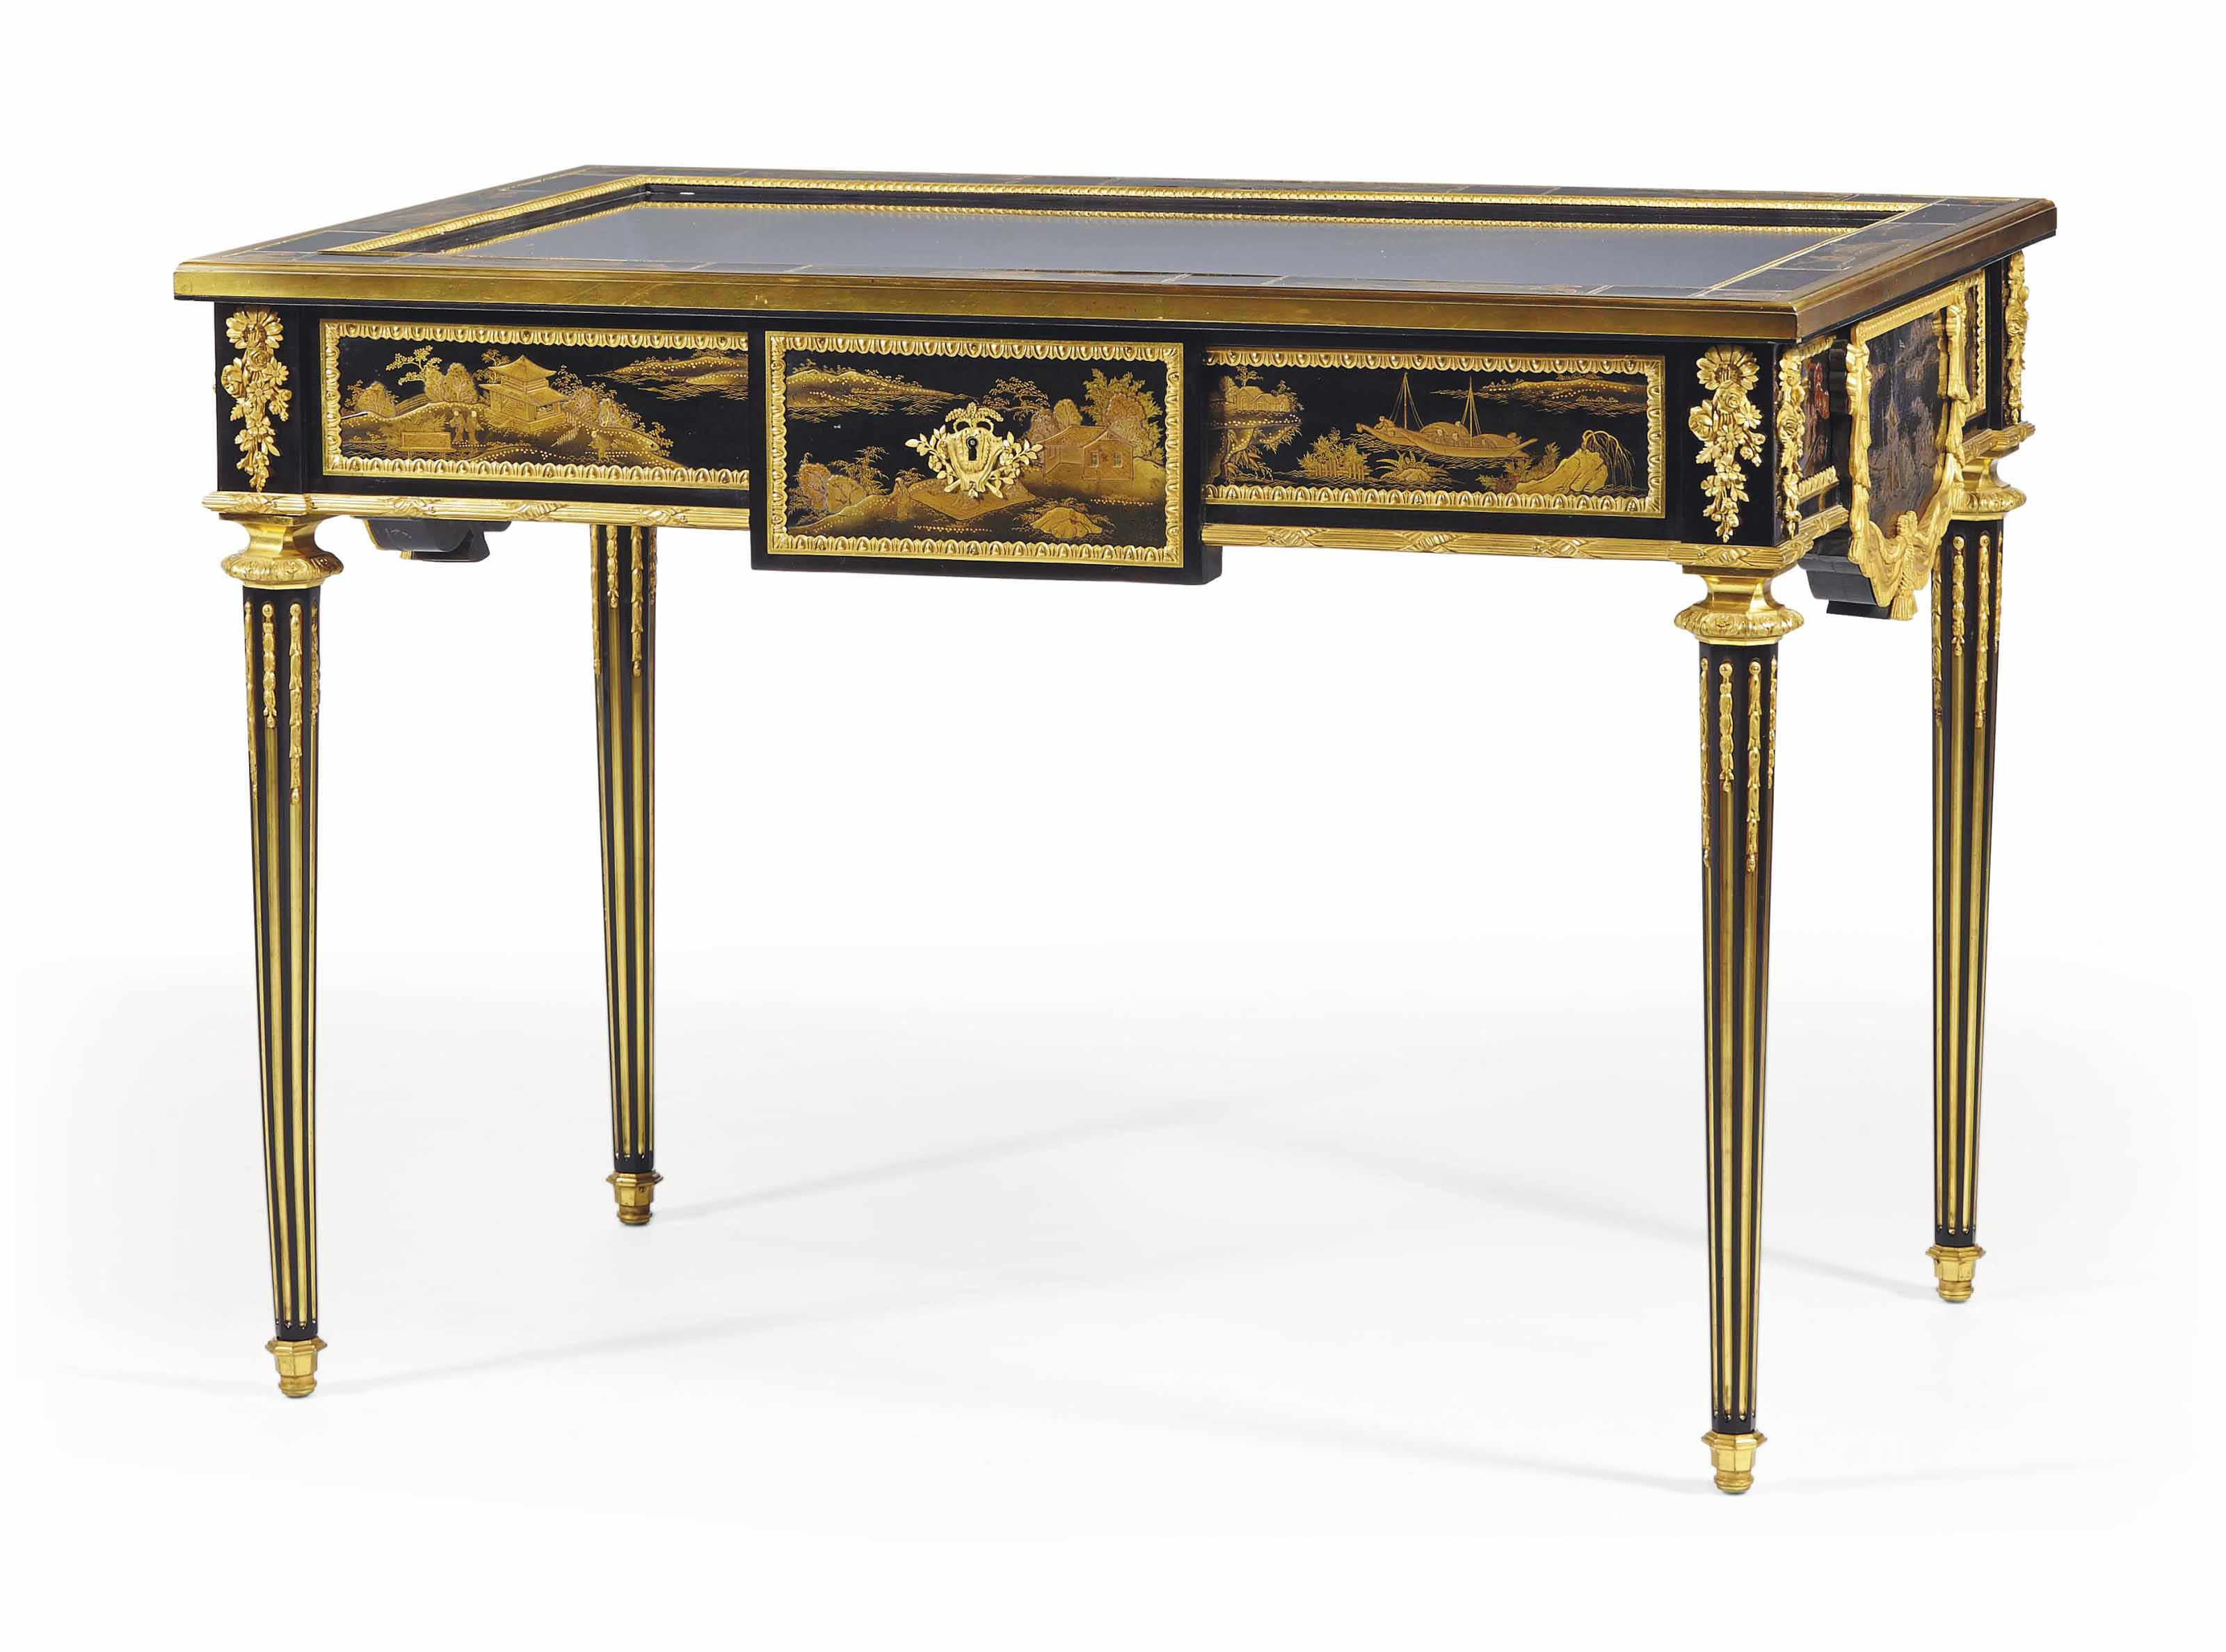 A FRENCH ORMOLU-MOUNTED LACQUER AND EBONISED VITRINE TABLE